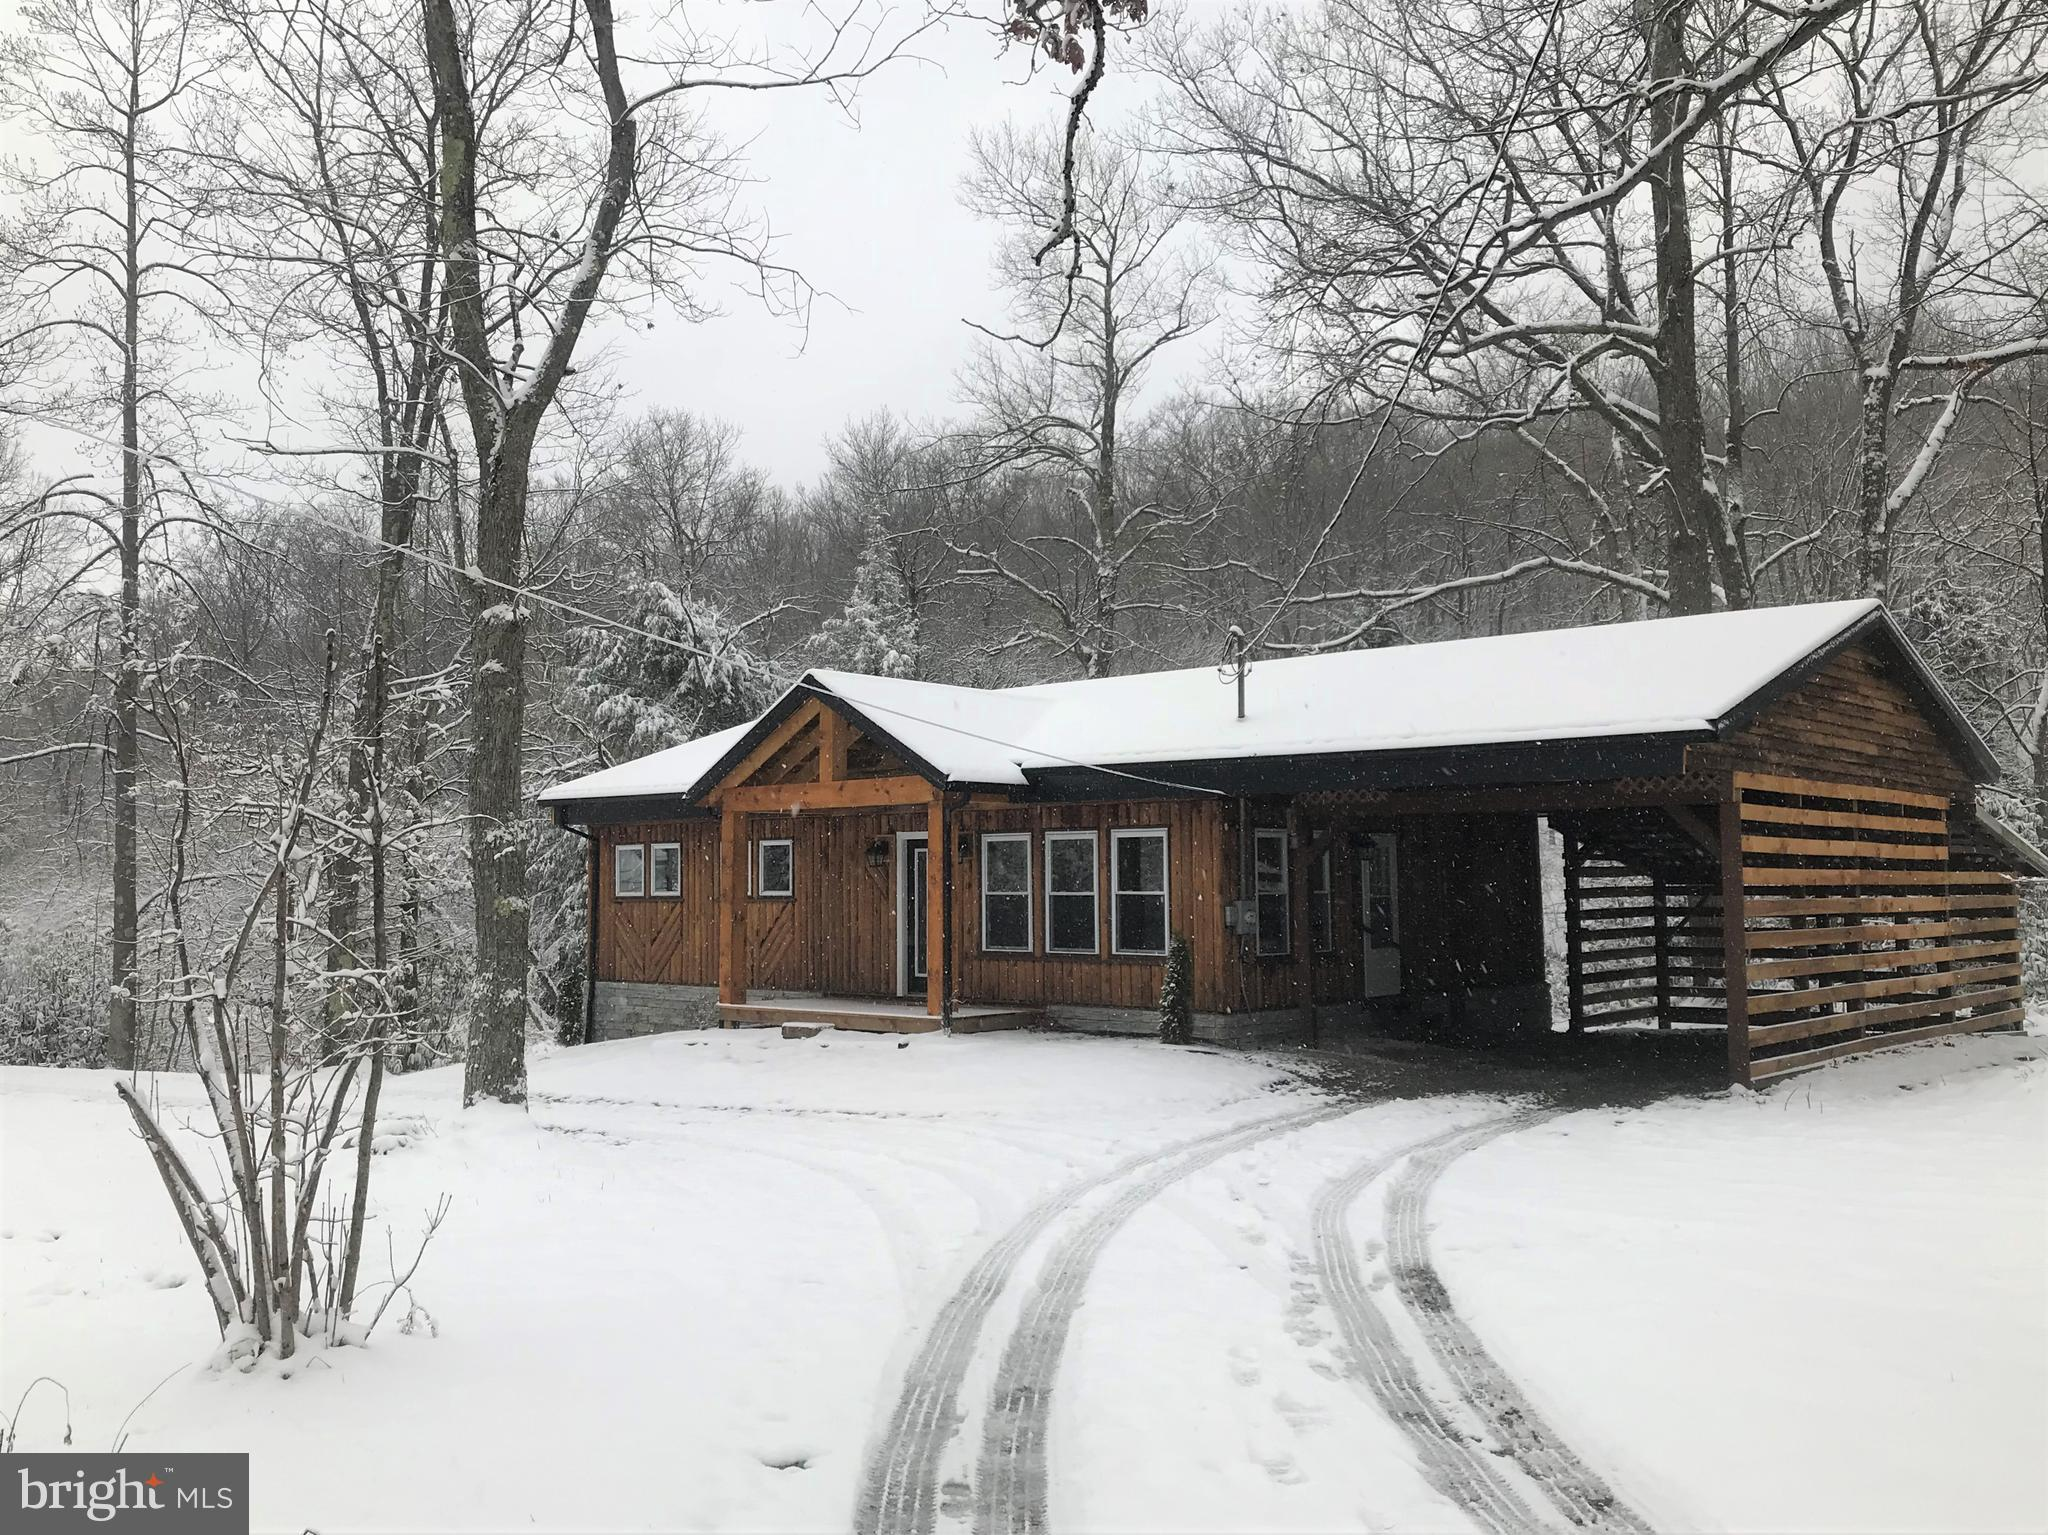 403 MAPLE SUMMIT RD, OHIOPYLE, PA 15470